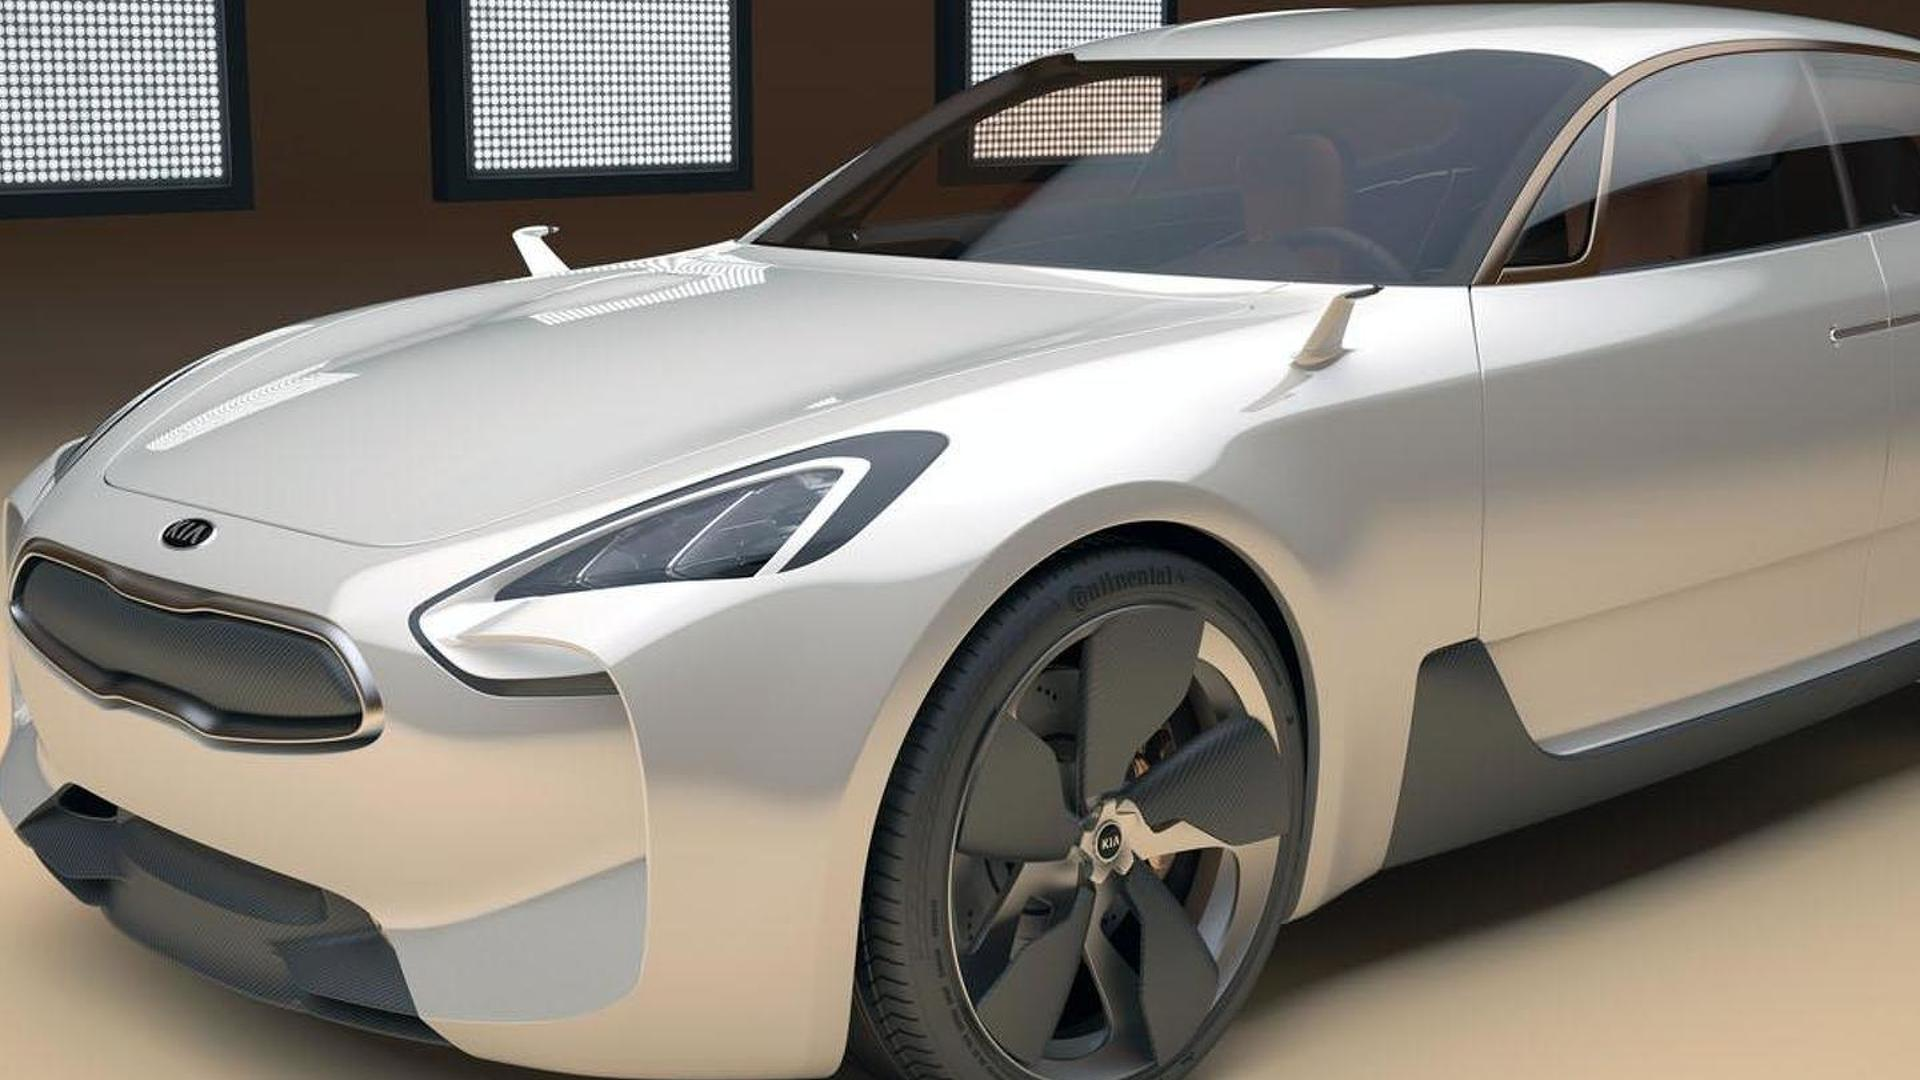 Kia GT reportedly approved for production, coming by the end of 2016